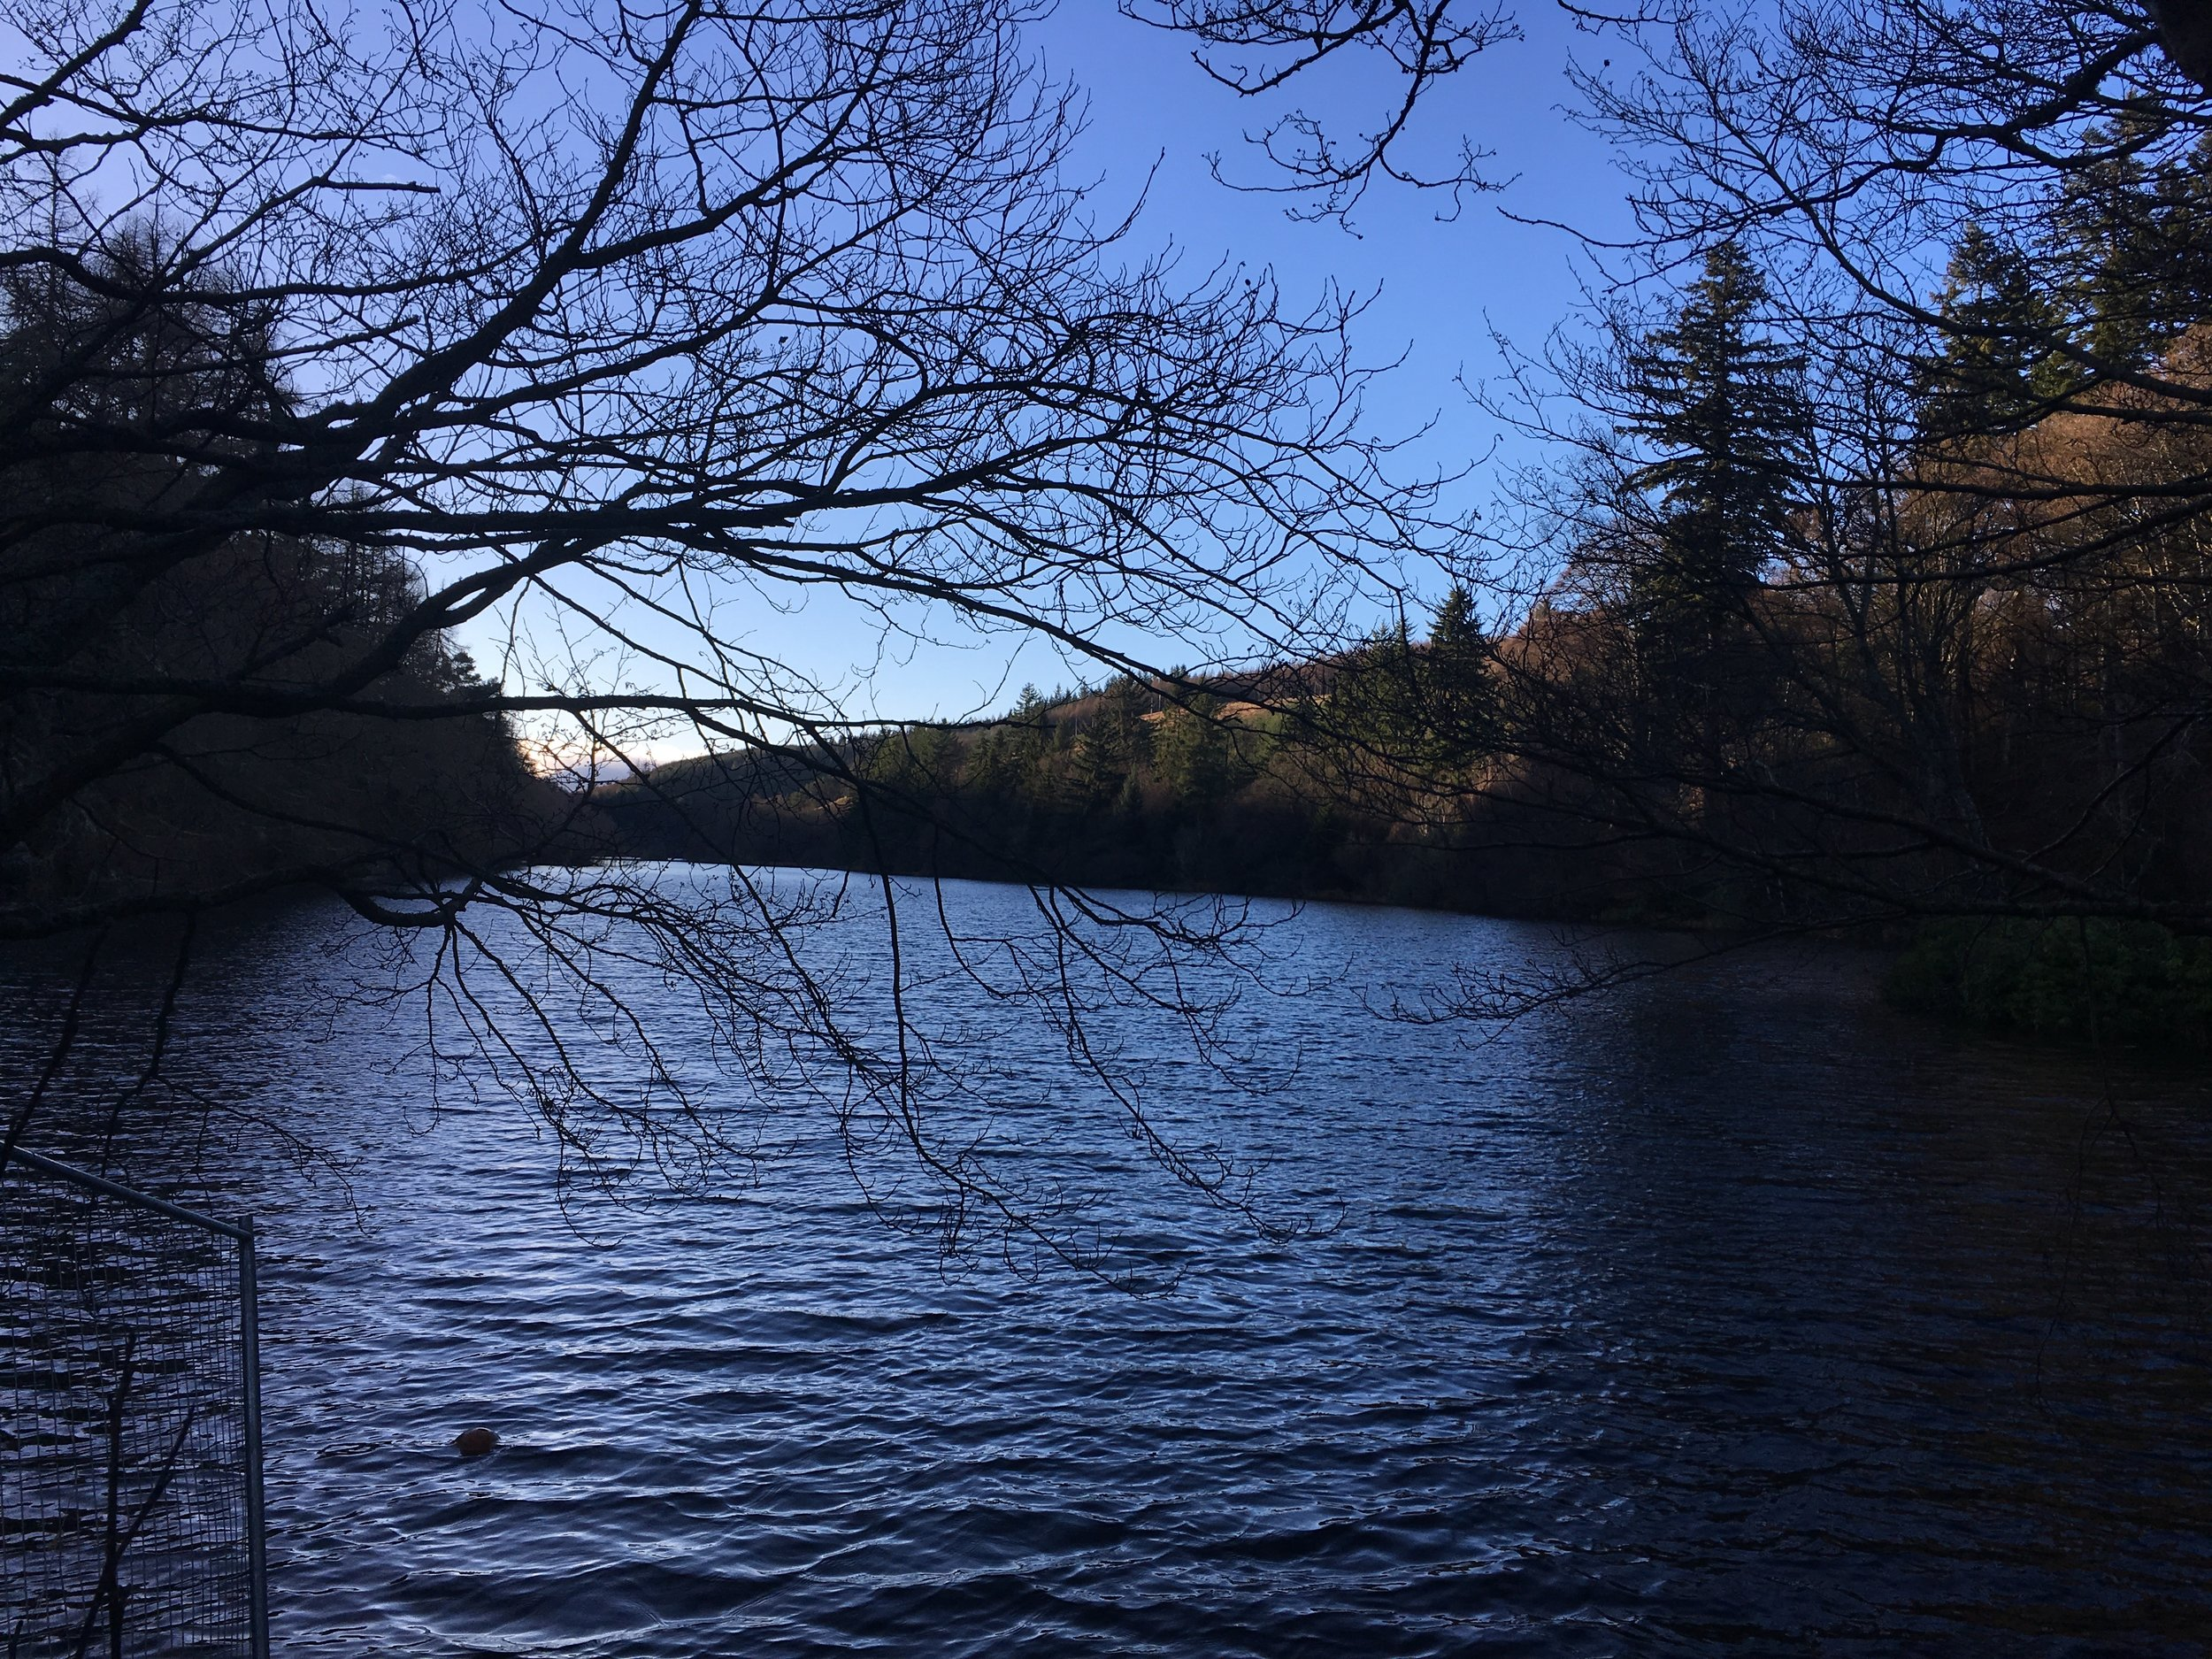 The River Spey is the ninth longest river in the United Kingdom, as well as the third longest and fastest-flowing river in Scotland. It is important to the area for salmon fishing and whisky production.